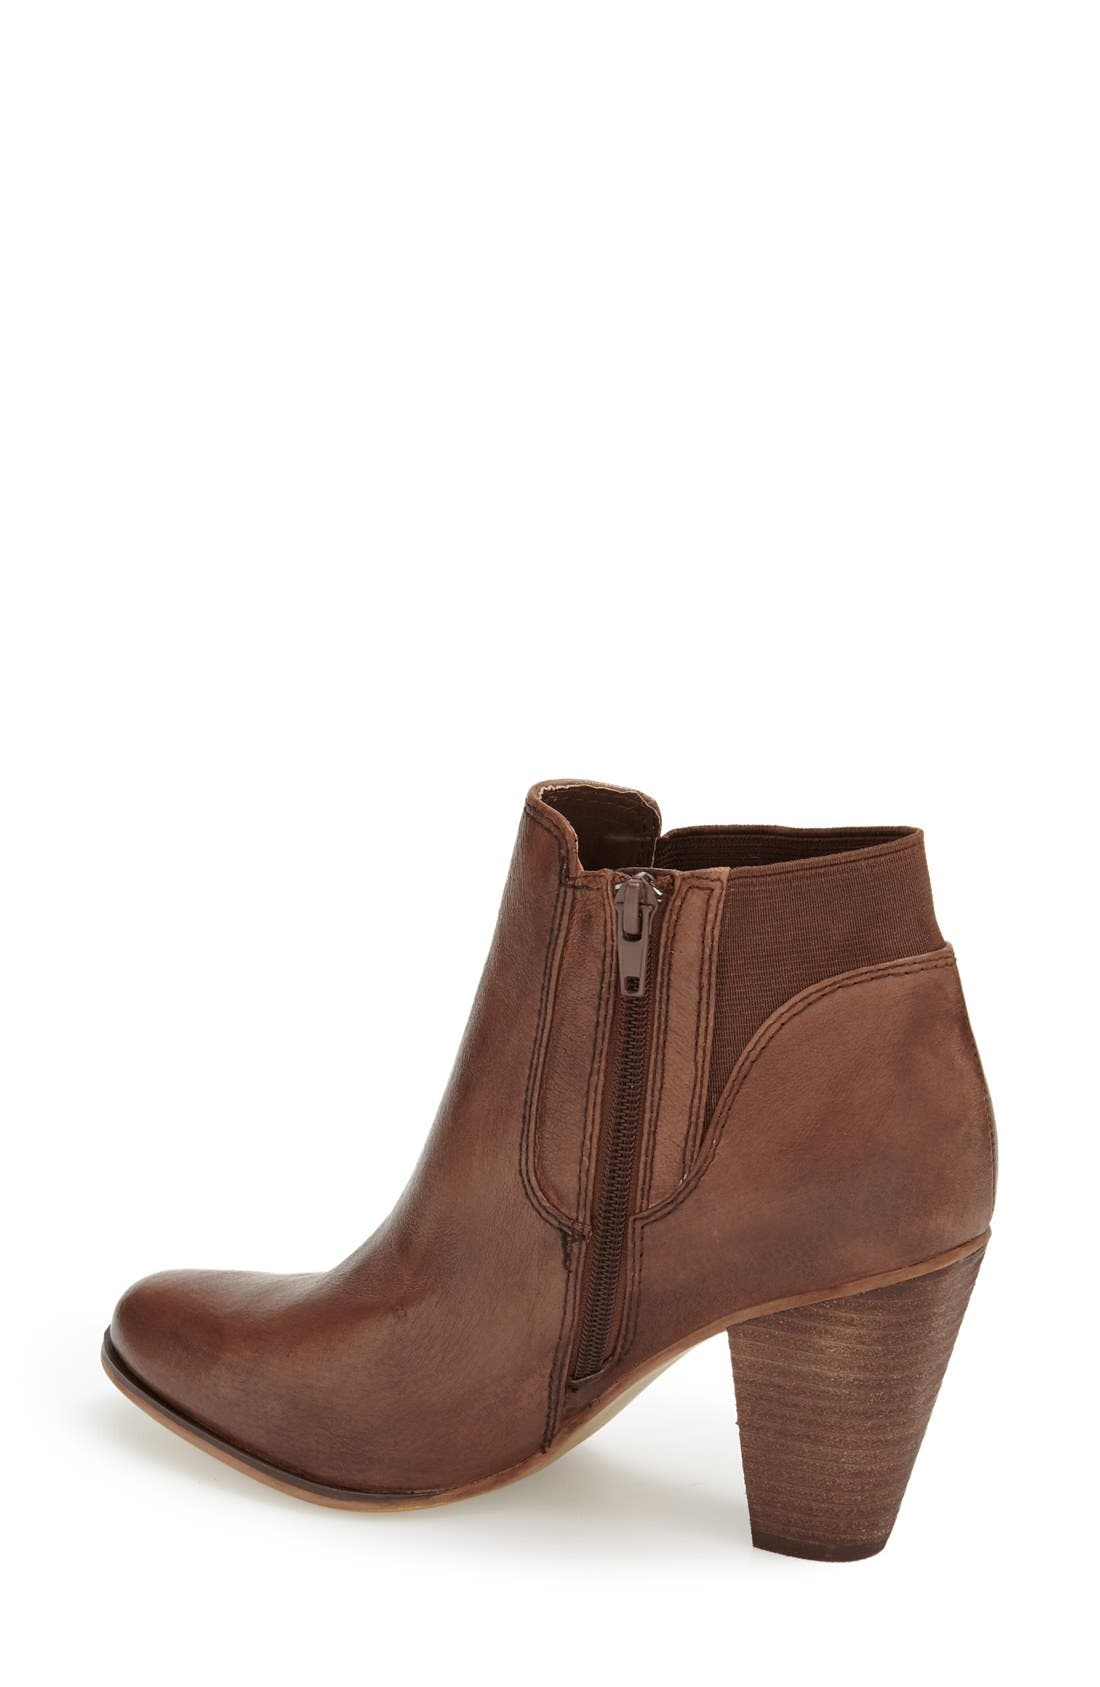 Alternate Image 2  - Steven by Steve Madden 'Roami' Ankle Bootie (Women)